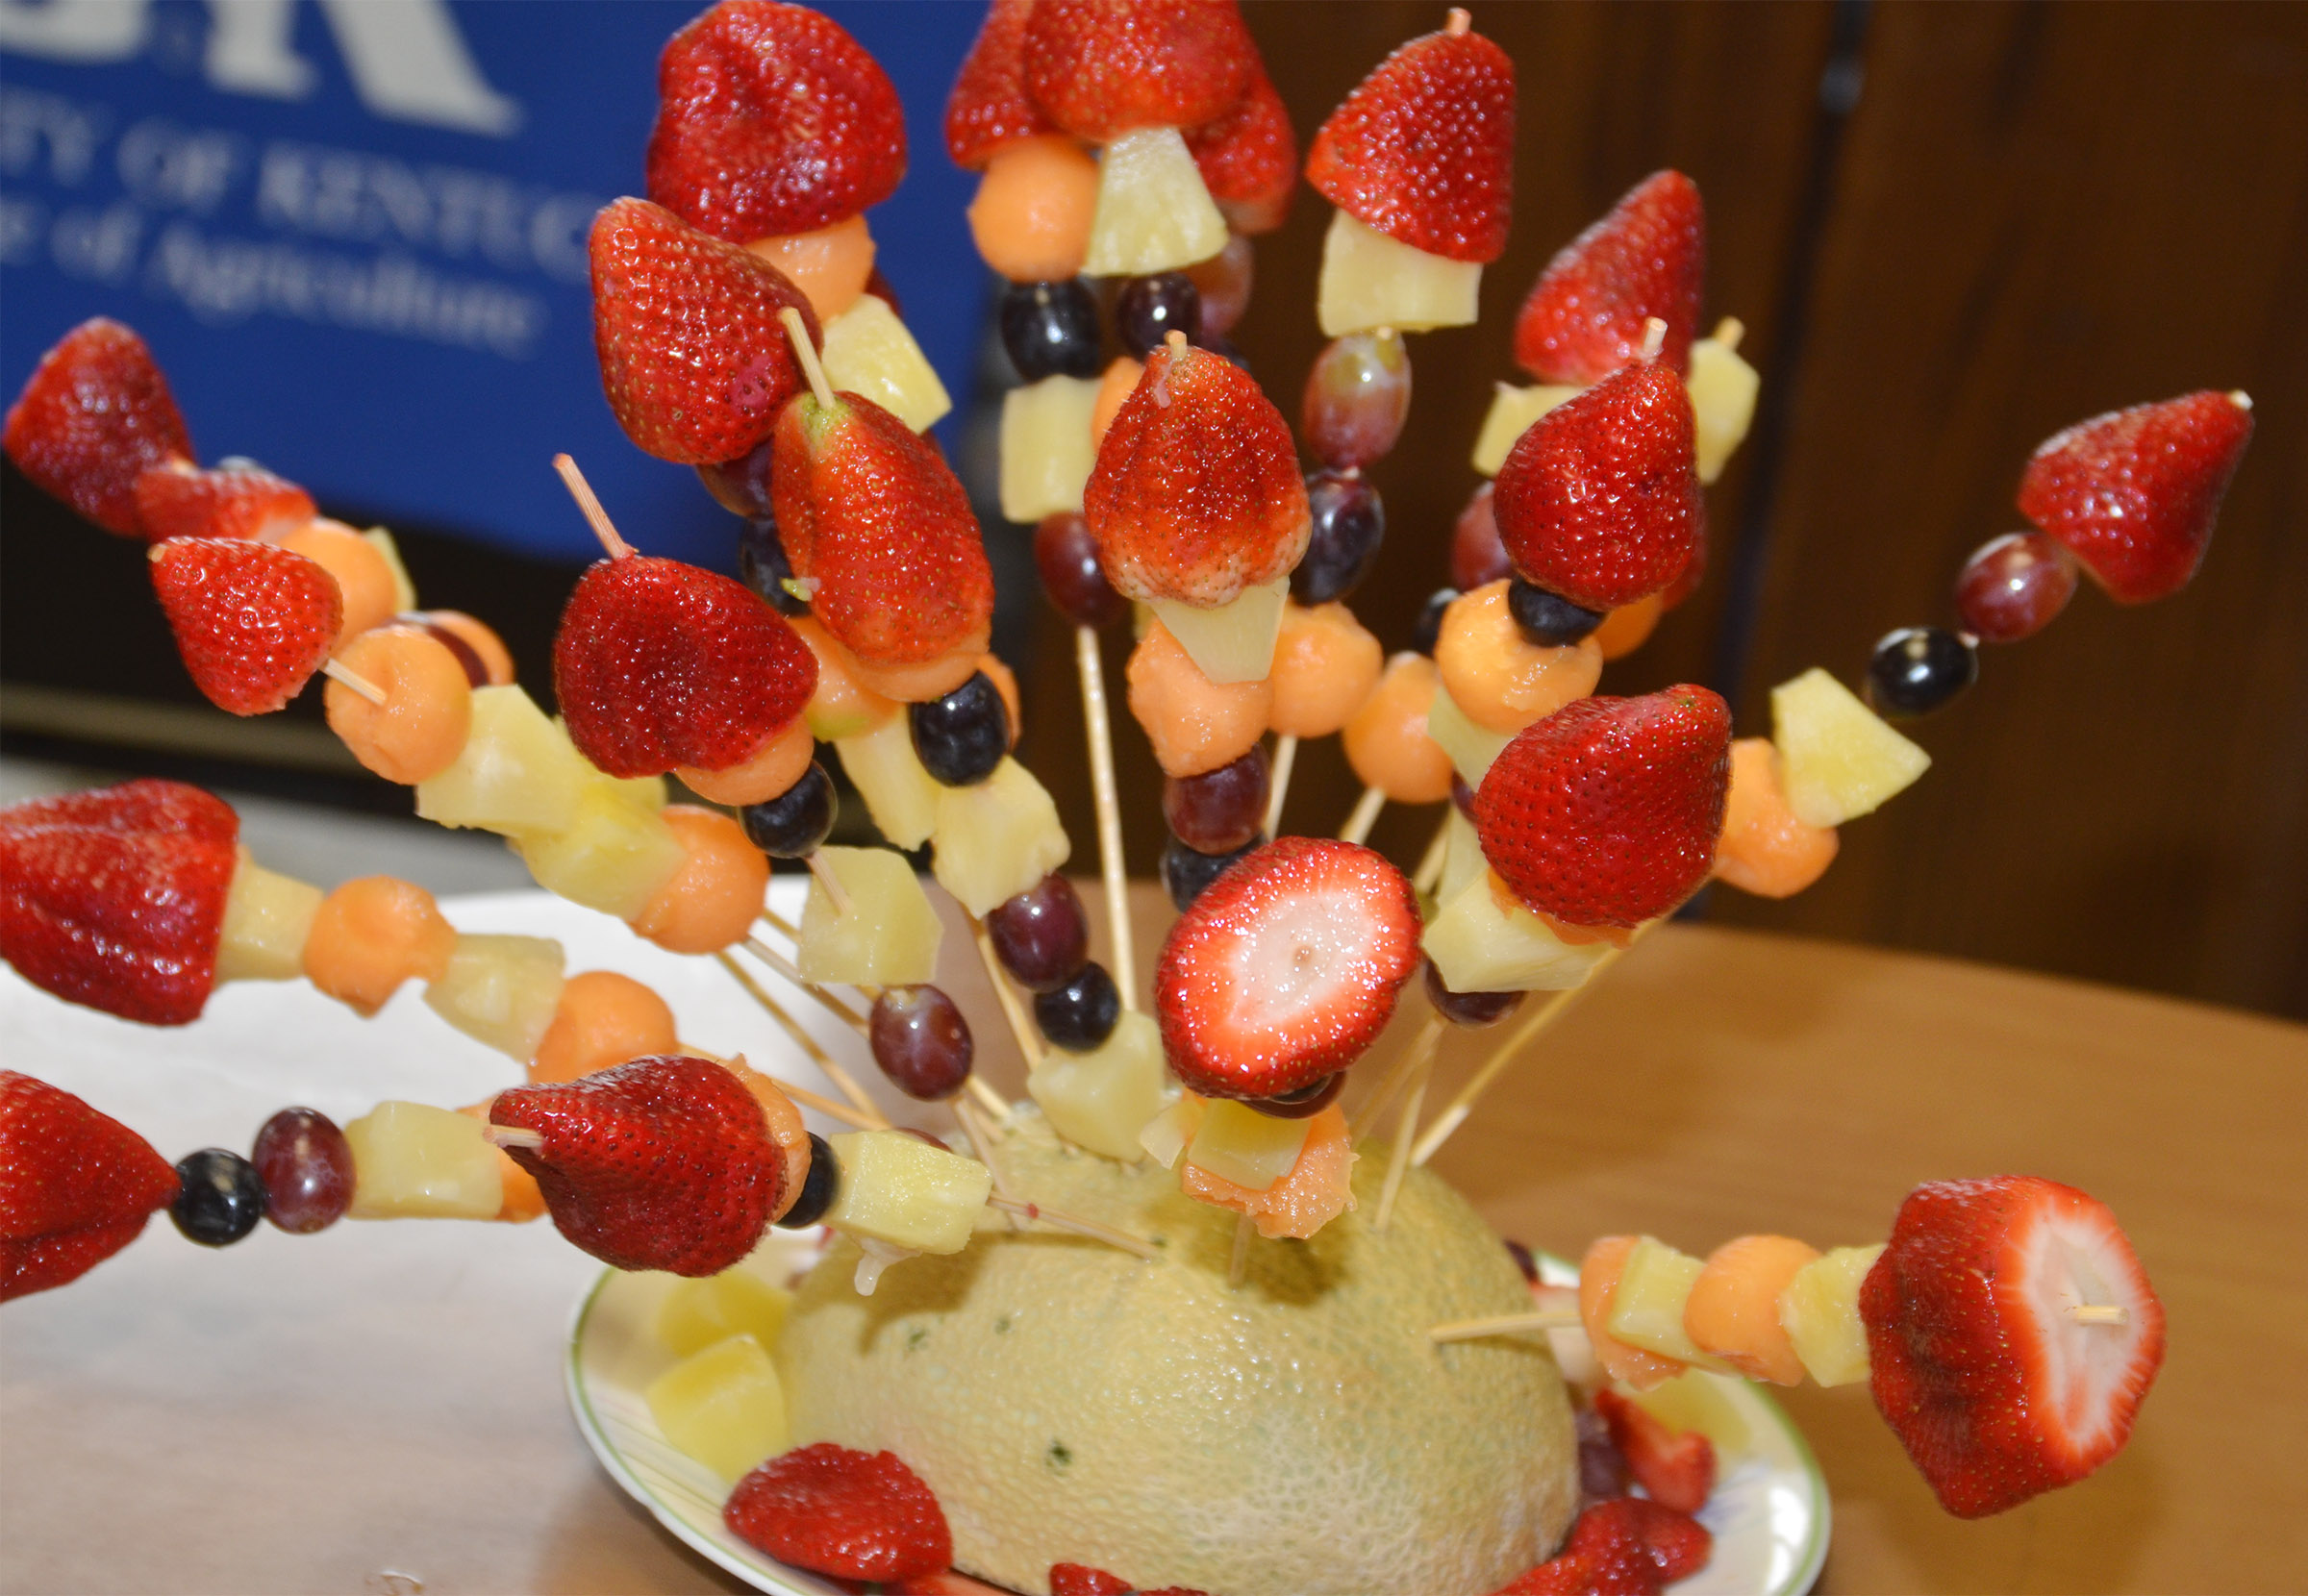 CHS students worked together to make this fruit arrangement.